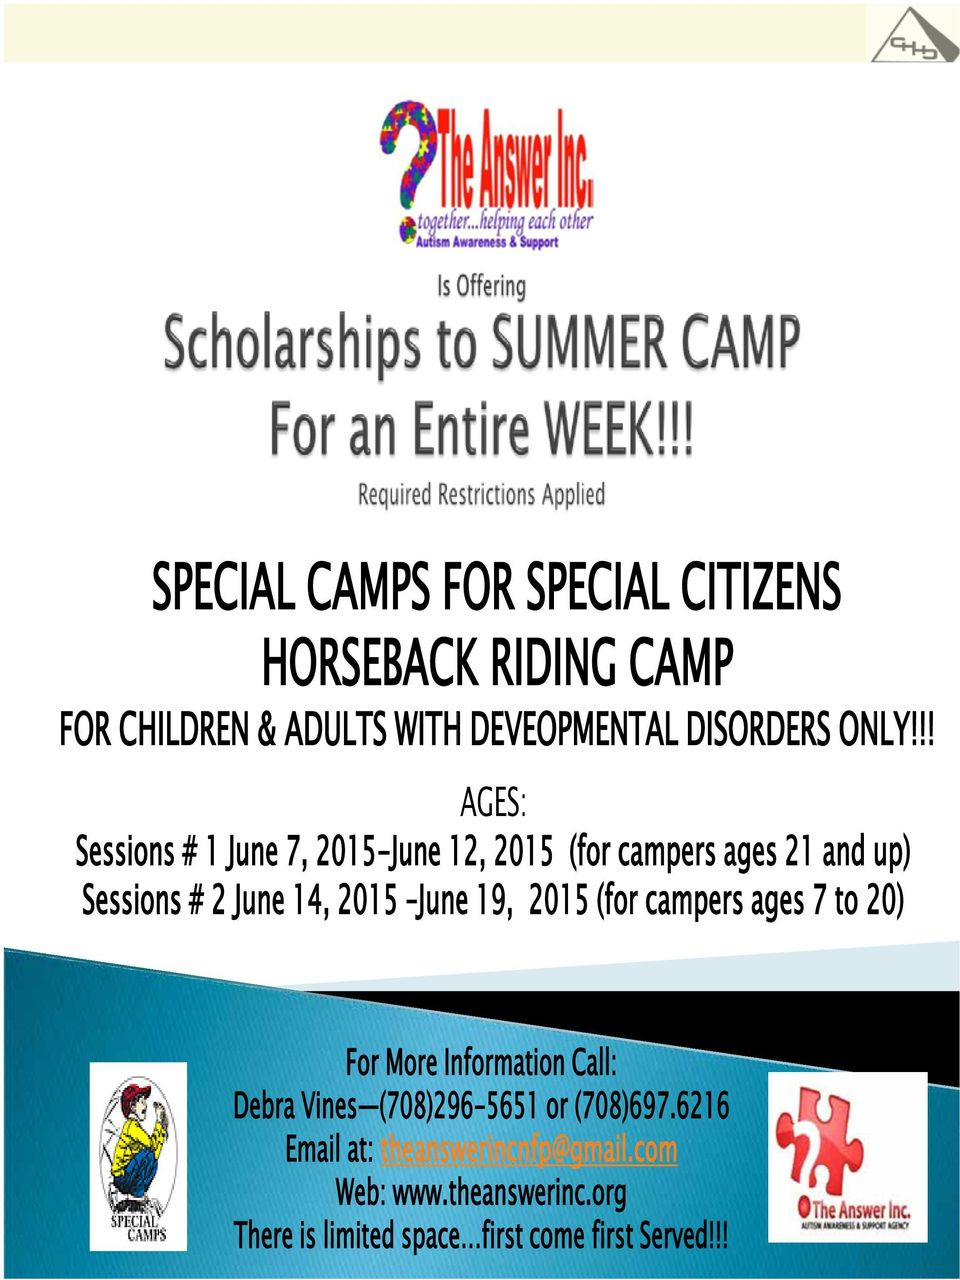 June 19, 2015 (for campers ages 7 to 20) For More Information Call: Debra Vines (708)296-5651 or (708)697.